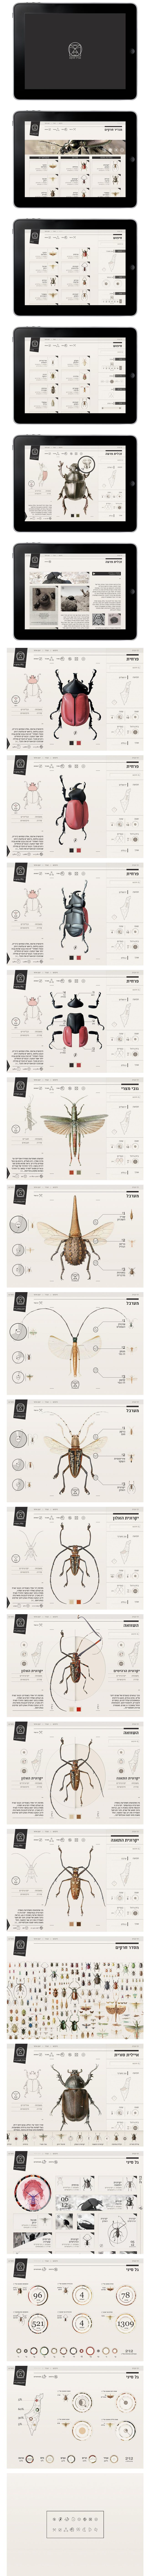 Interactive insect field guide- Exploring and experiencing the world of insects in a new interactive way. The core of the app is its search possibilities, which use new search values that the printed book cannot provide us with. Through this new way of exploring, along with departing from the existing catalog conventions new intersections and contexts will be revealed among different insects.